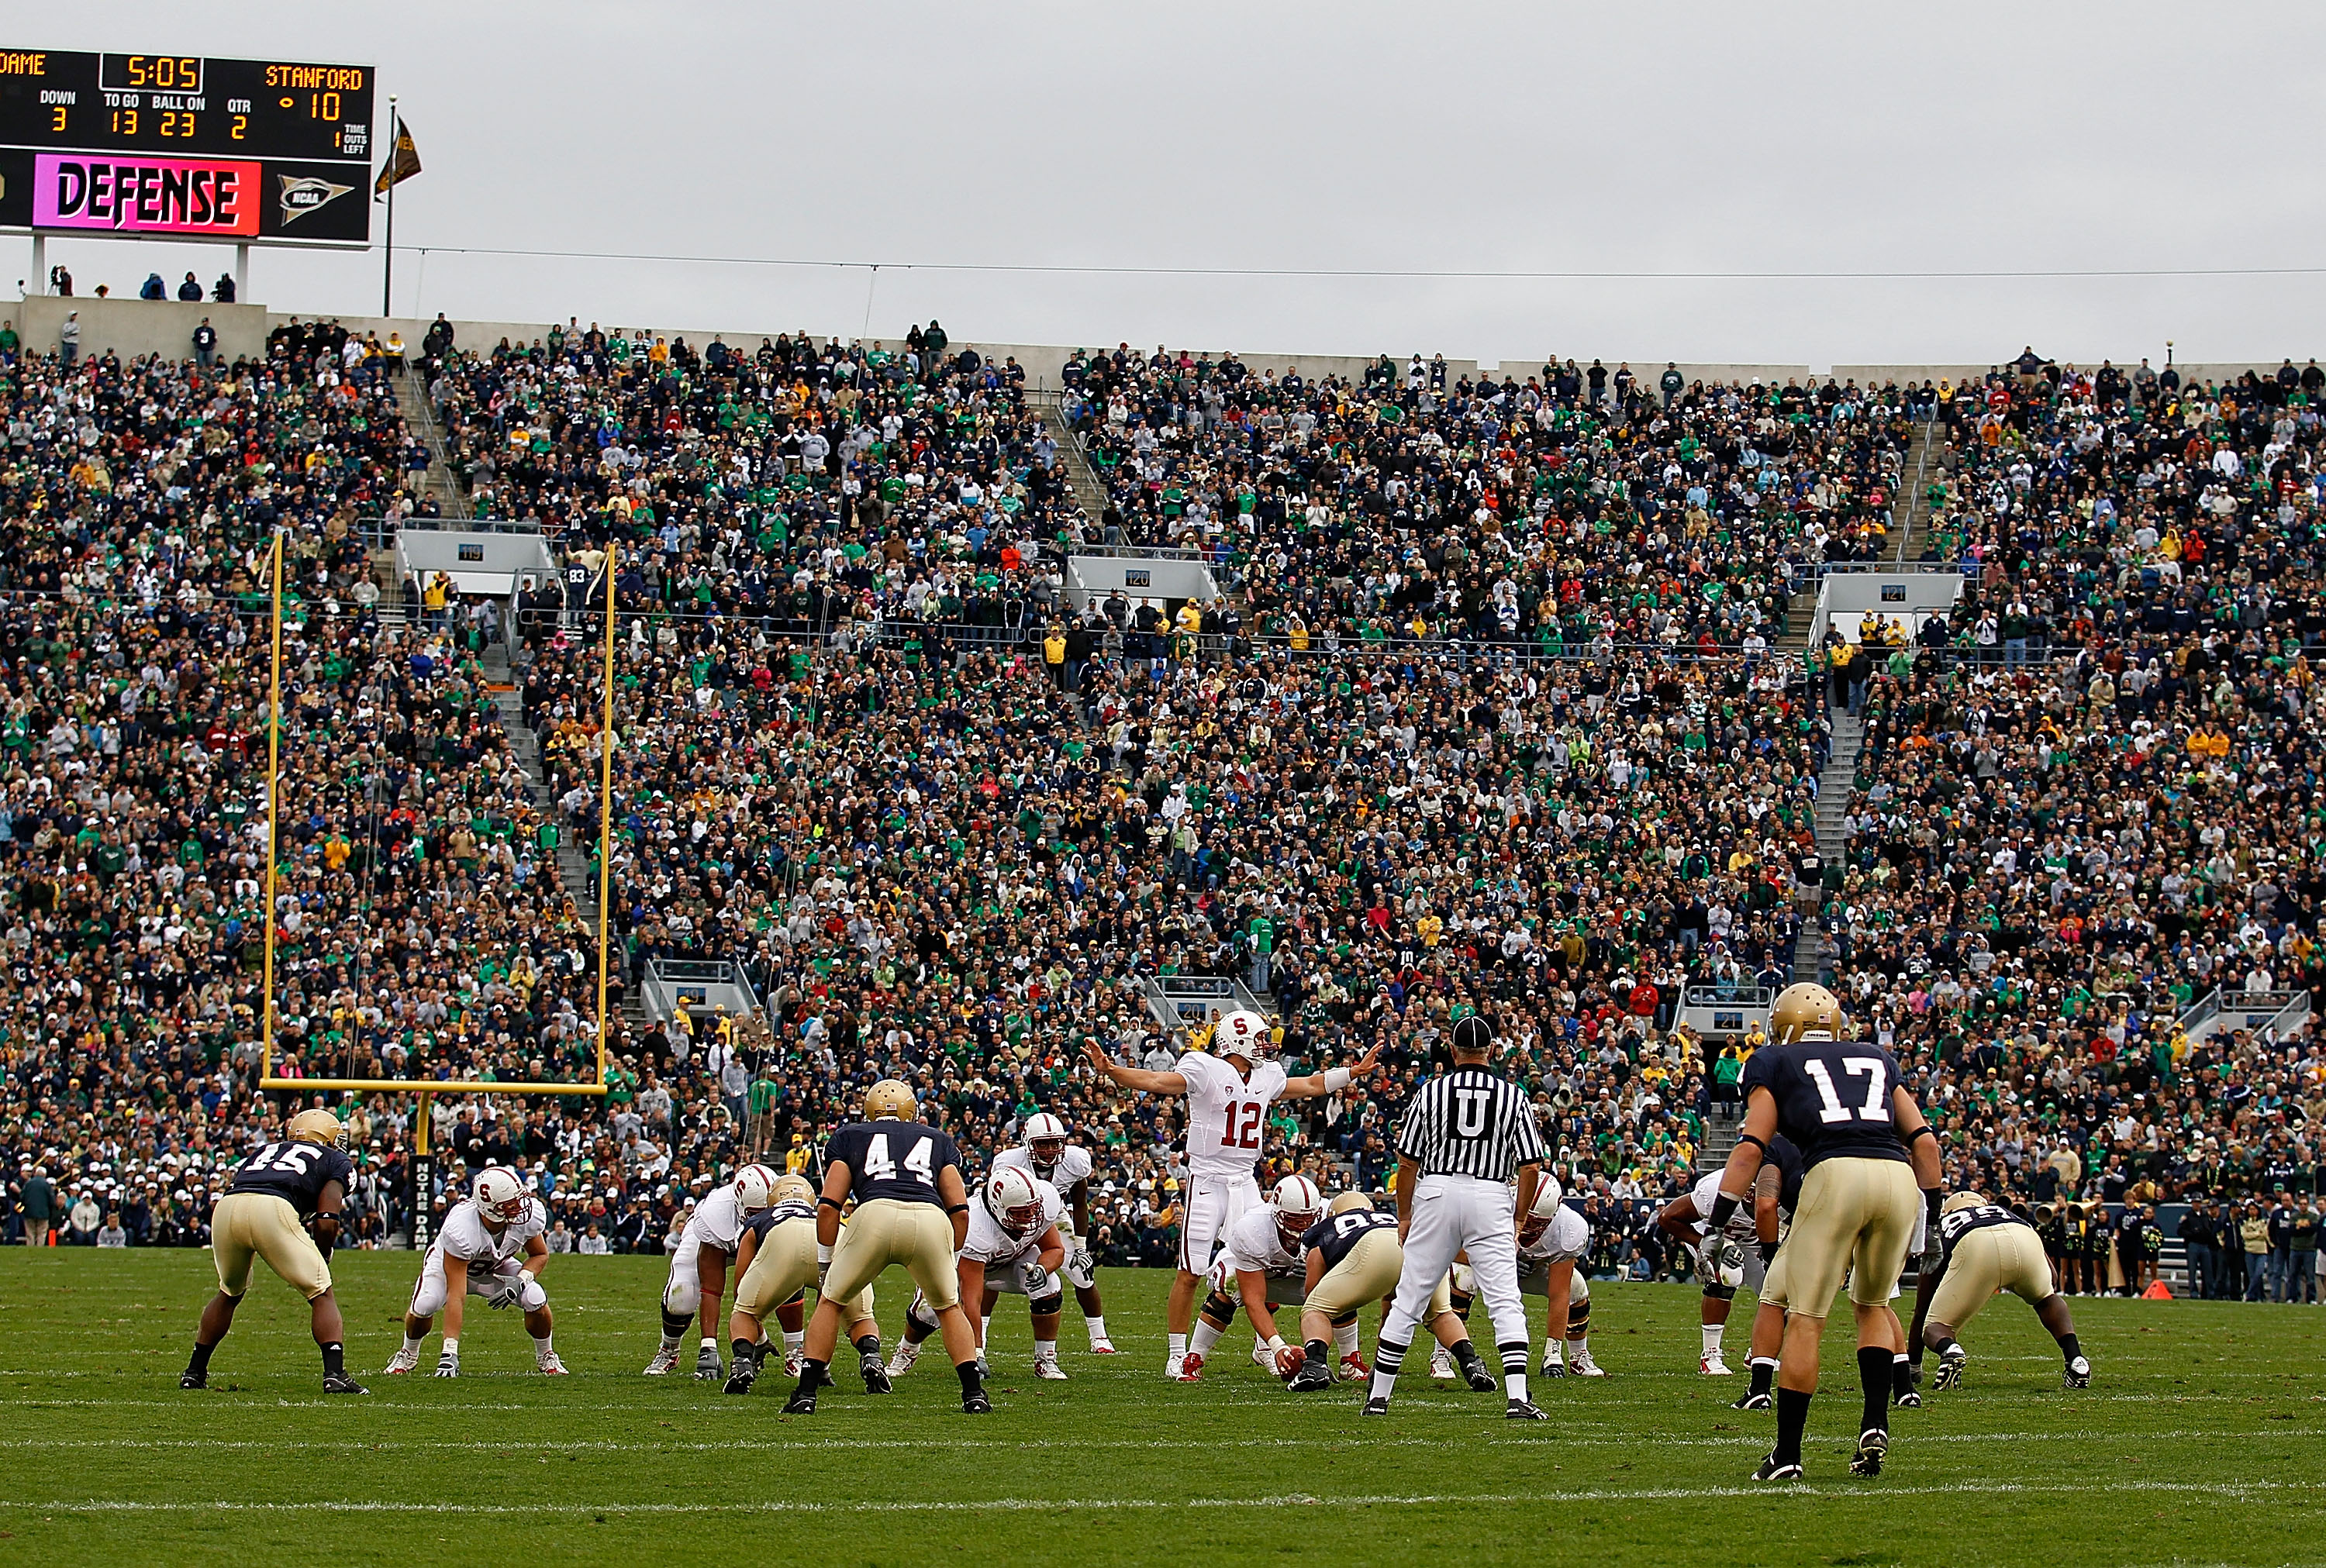 SOUTH BEND, IN - SEPTEMBER 25: Andrew Luck #12 of the Stanford Cardinal calls a play against the Notre Dame Fighting Irish at Notre Dame Stadium on September 25, 2010 in South Bend, Indiana. Stanford defeated Notre Dame 37-14. (Photo by Jonathan Daniel/Ge